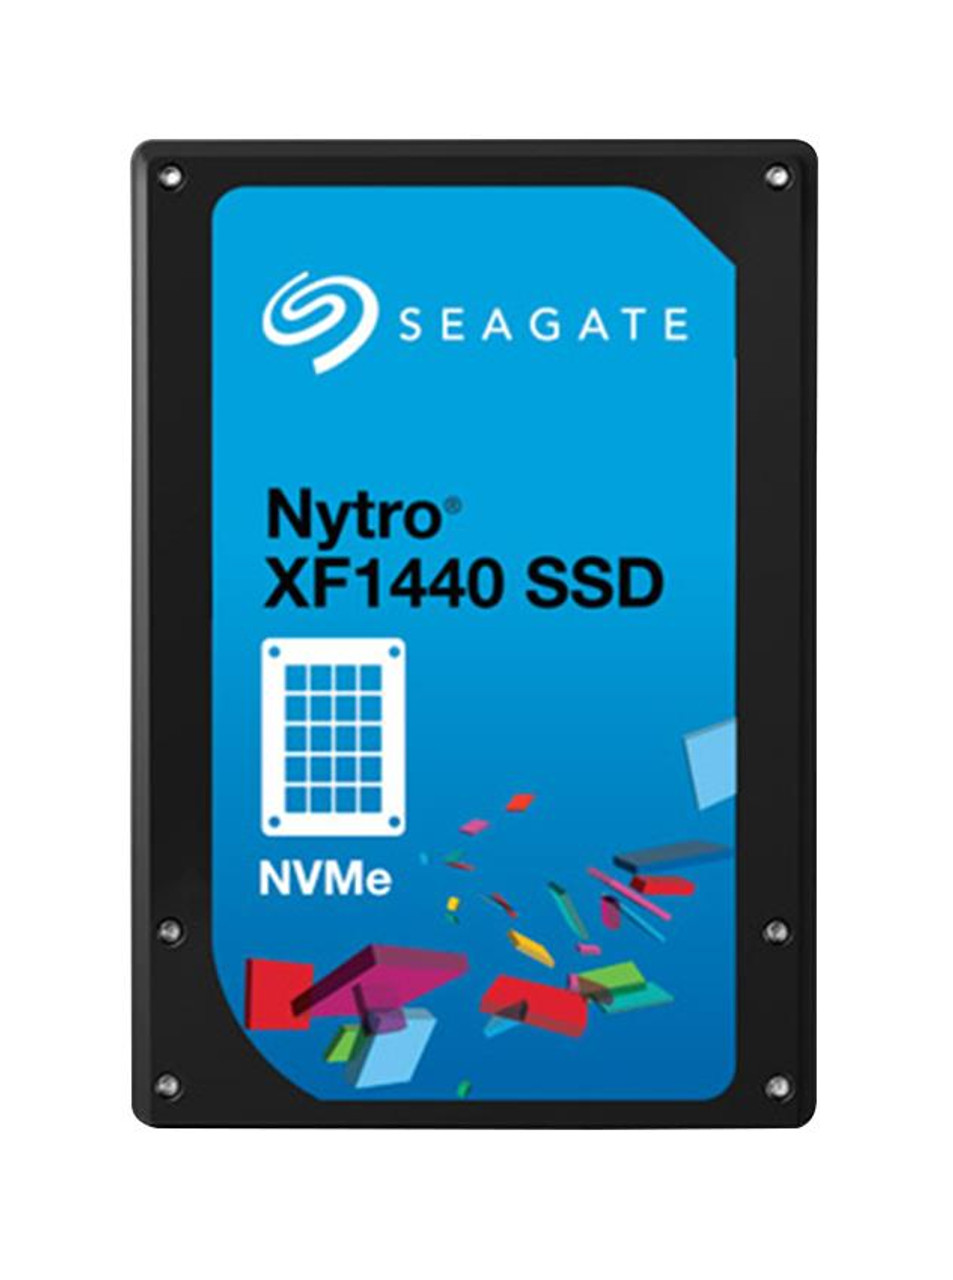 ST1600KN0001 Seagate Nytro XF1440 1 6TB eMLC PCI Express 3 0 x4 NVMe Mixed  Use U 2 2 5-inch Internal Solid State Drive (SSD)